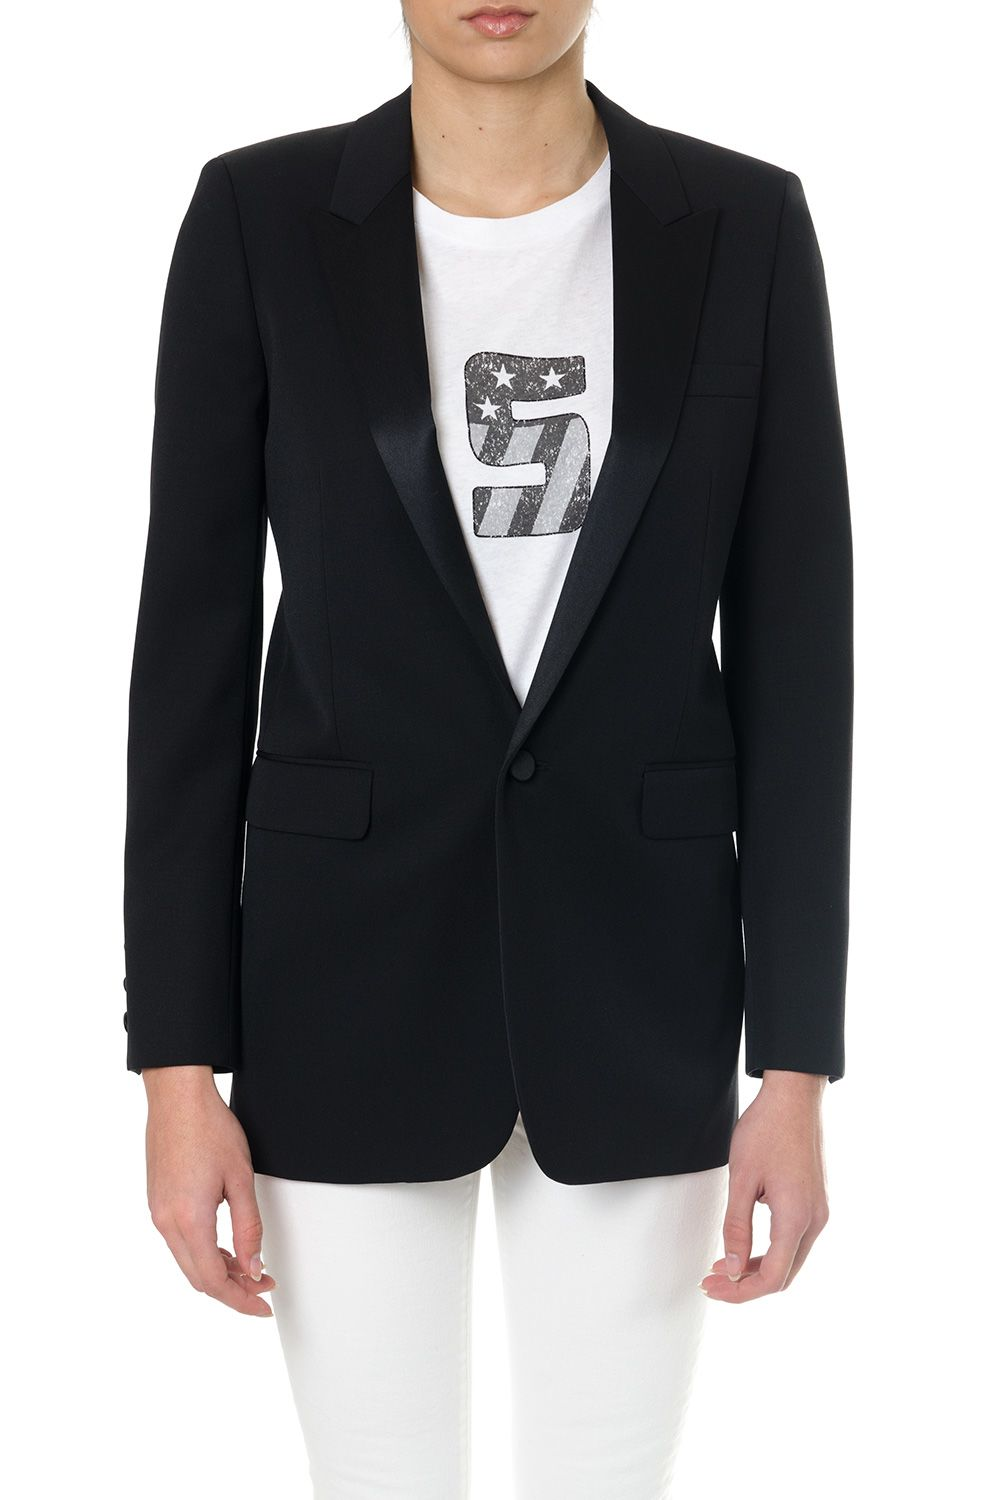 Saint Laurent Black Virgin Wool Tuxedo Jacket